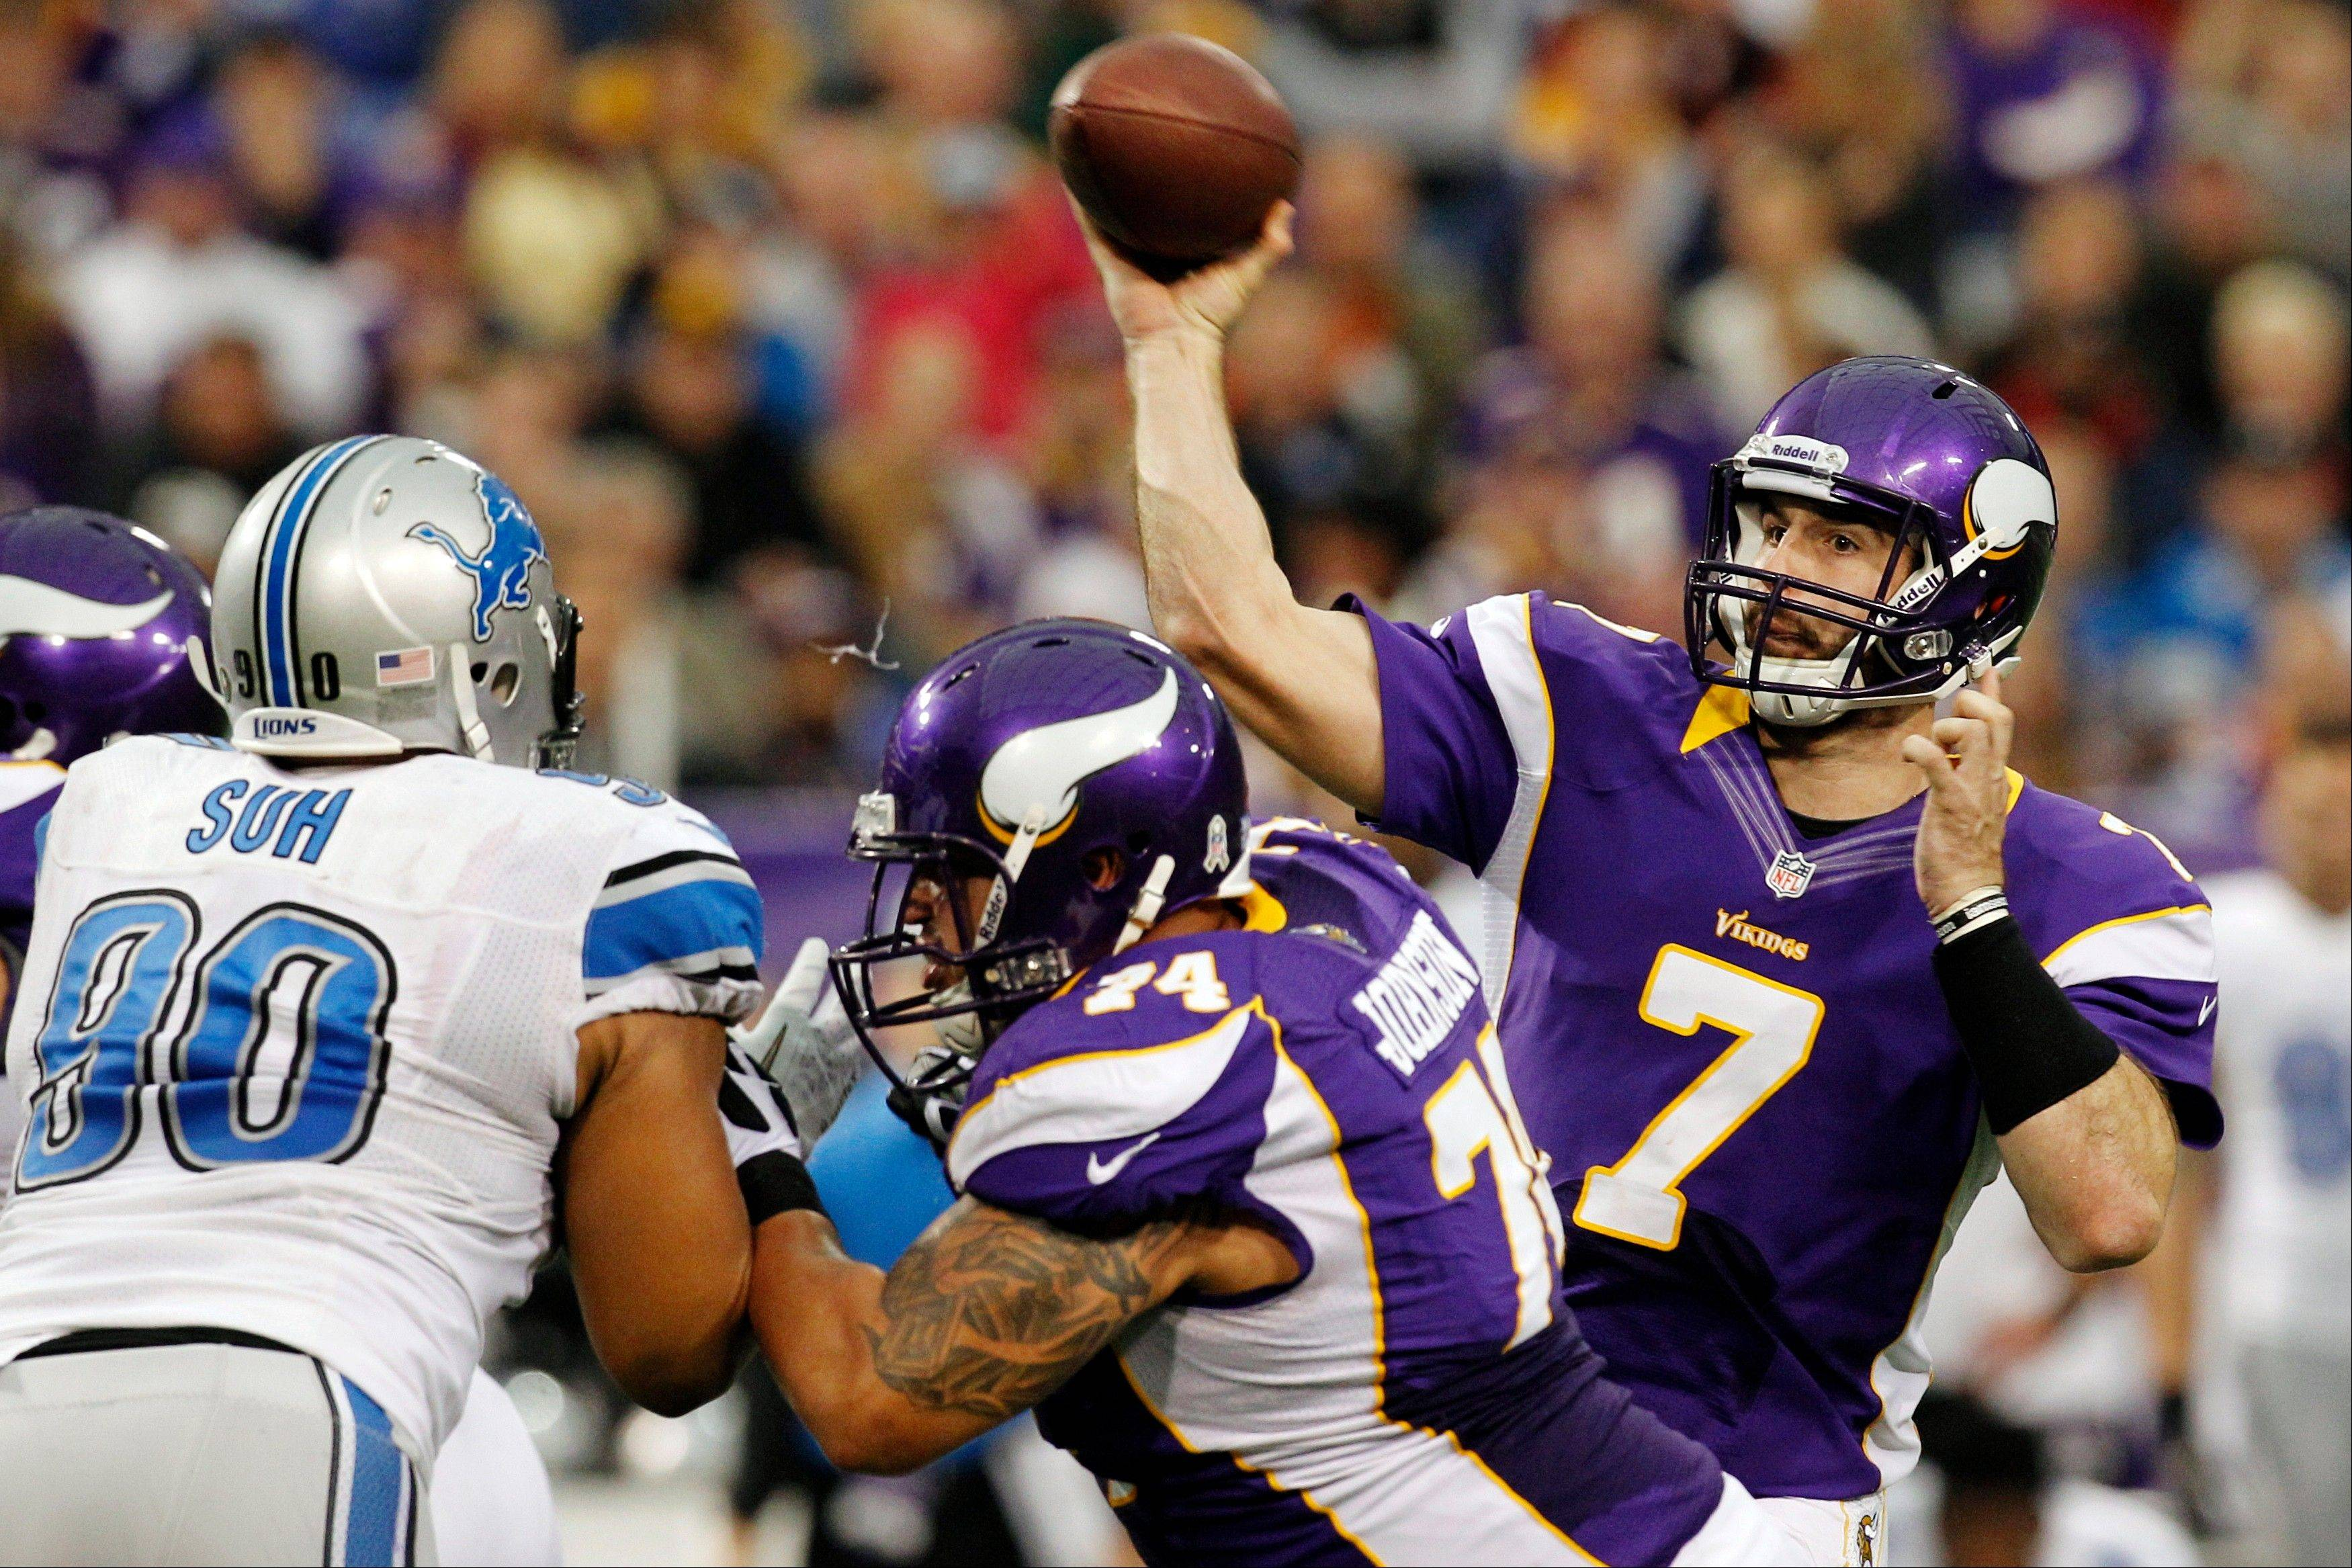 Minnesota Vikings quarterback Christian Ponder throws a pass Sunday during the second half against the Detroit Lions in Minneapolis. Ponder's up-and-down season hasn't done a thing to shake the organization's confidence in him, GM Rick Spielman said.